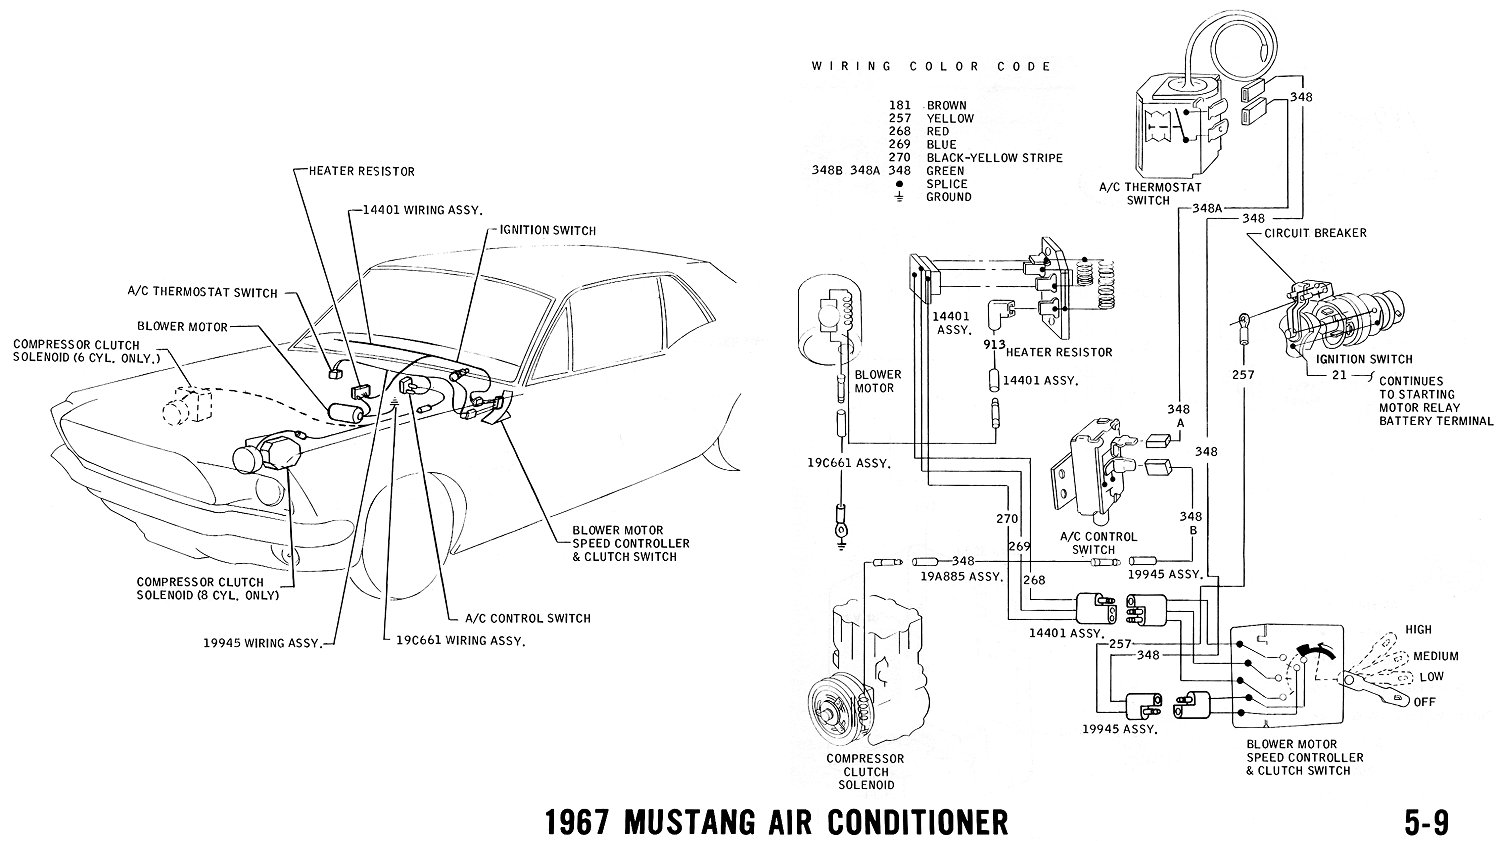 67ac 1967 mustang wiring and vacuum diagrams average joe restoration 1967 mustang ignition switch wiring diagram at nearapp.co